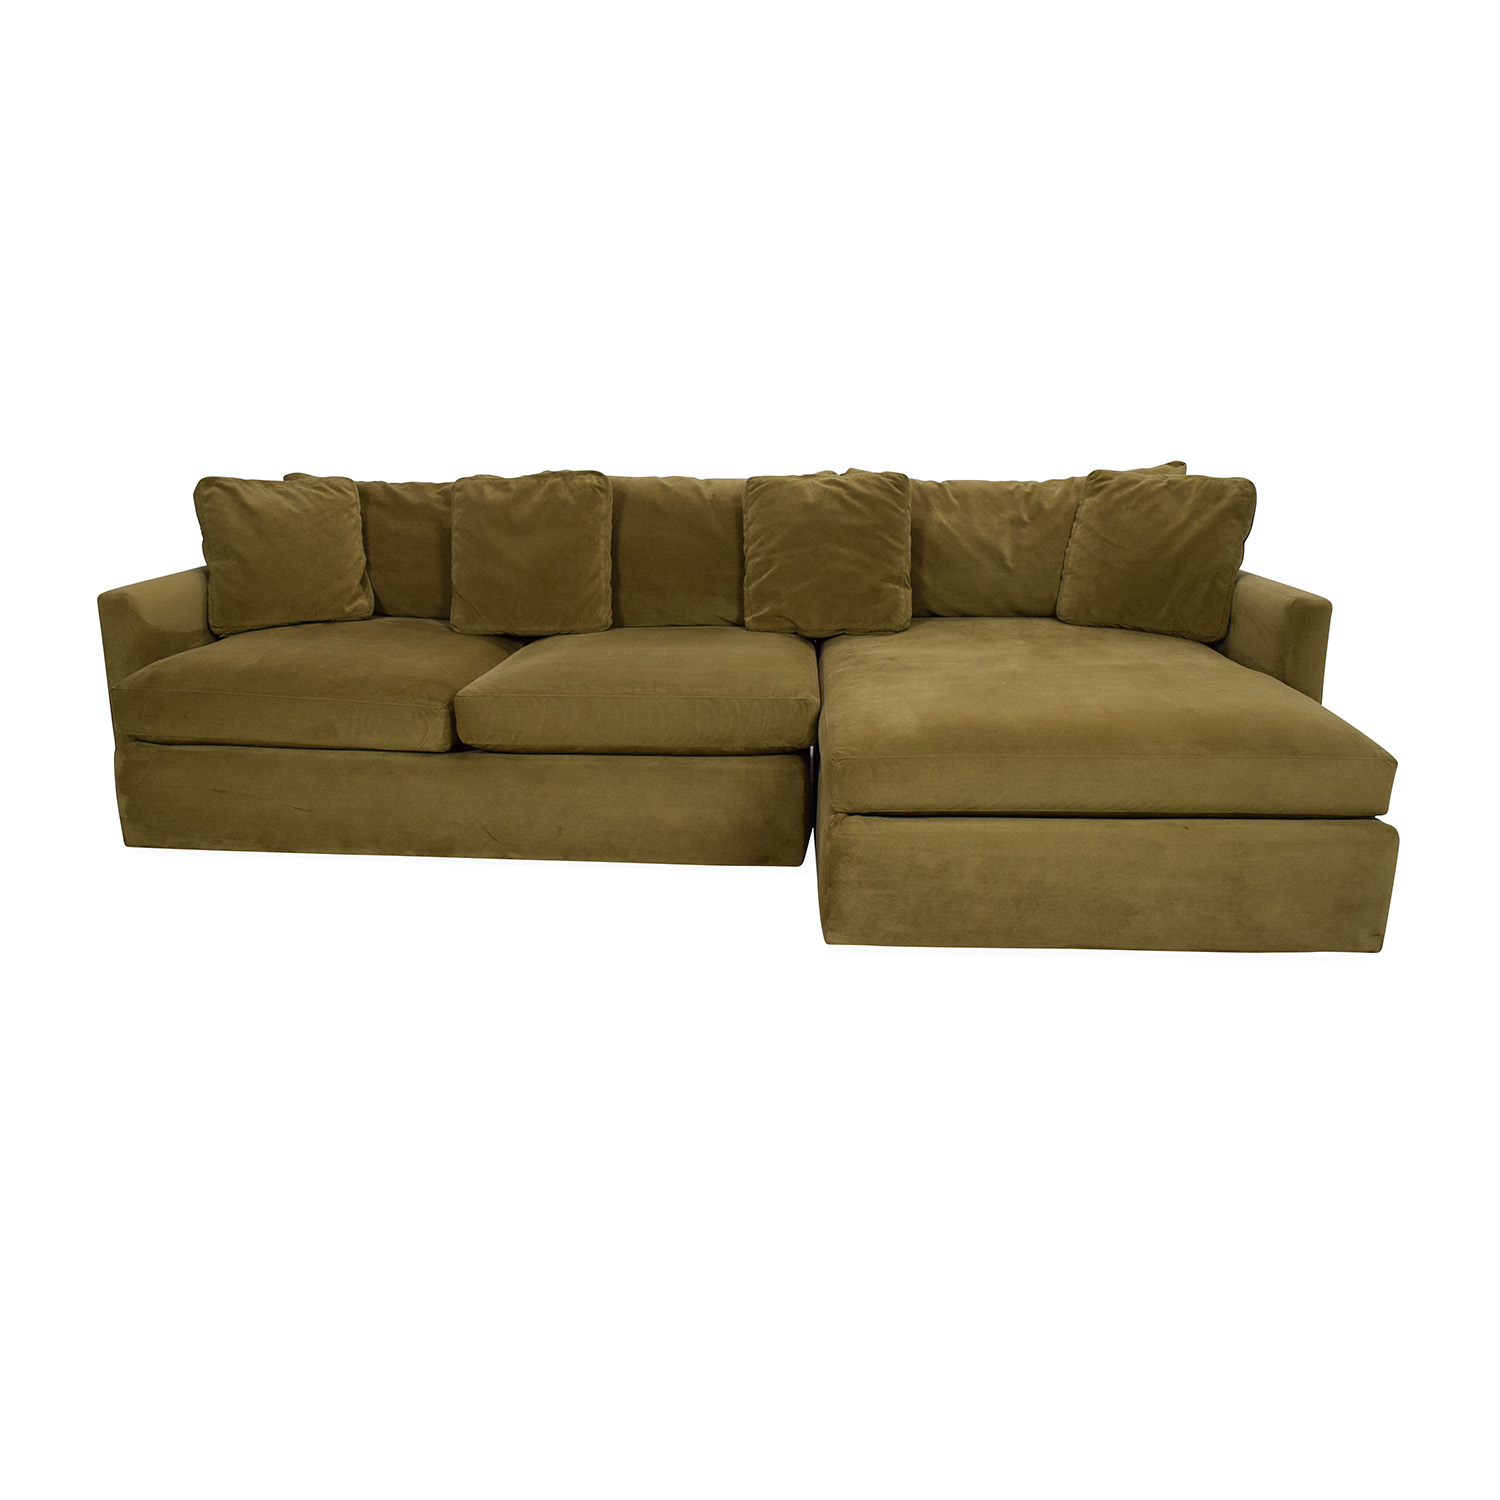 65% OFF - Crate & Barrel Crate and Barrel Lounge II Sectional Sofa ...